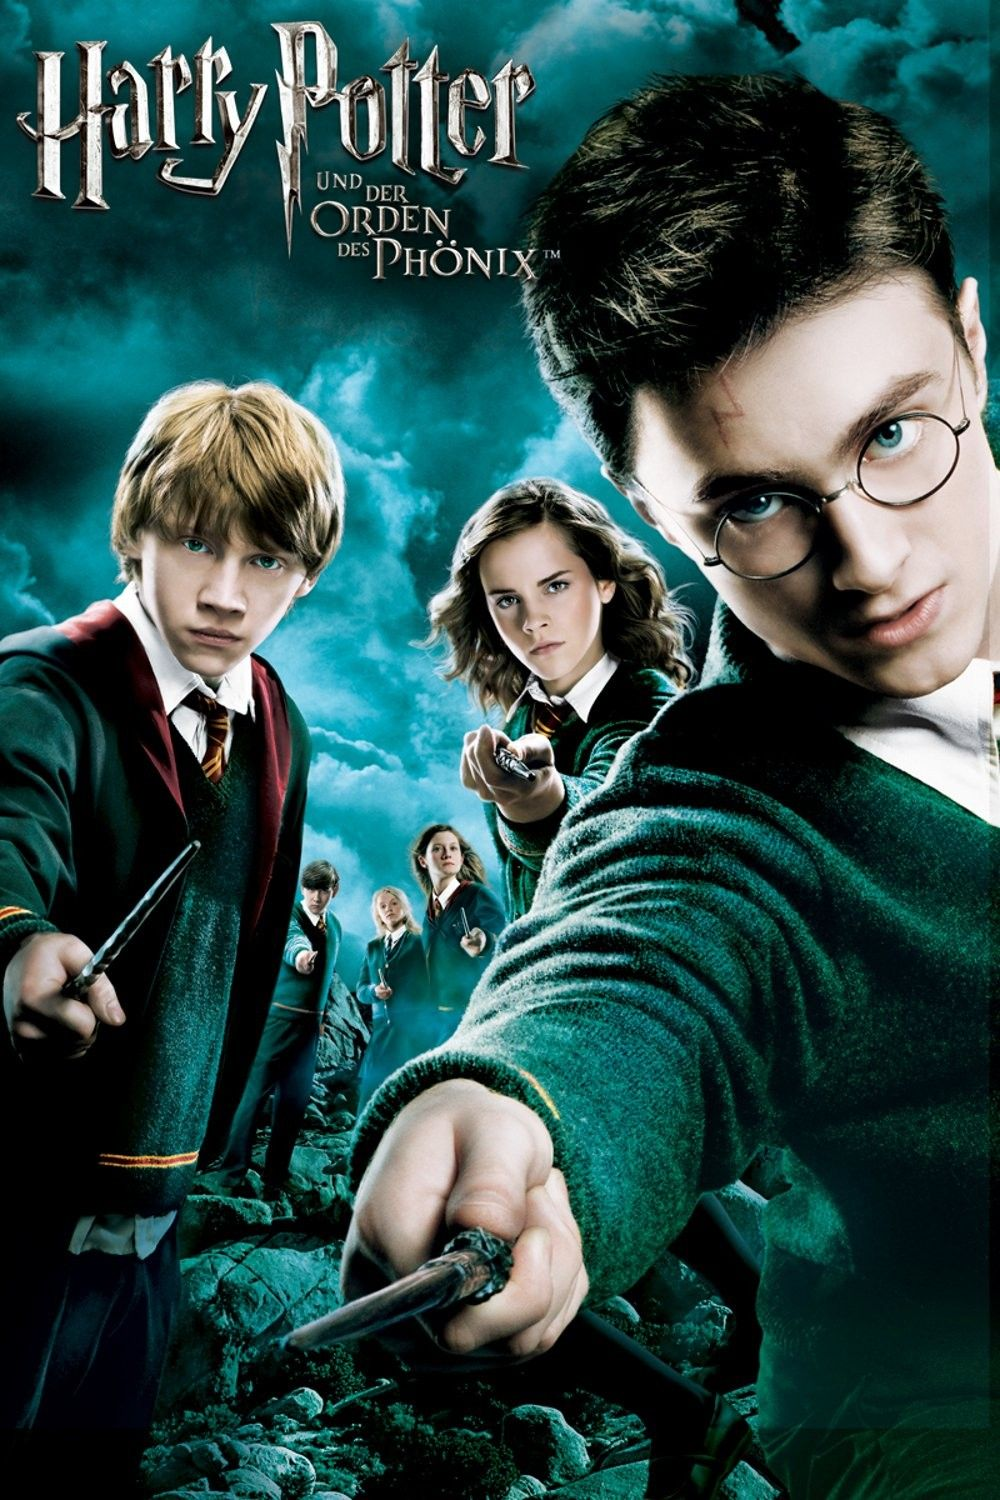 Harry Potter Und Der Orden Des Phonix Kostenlos Online Anschauen 2007 Hd Full Film Deutsch Phoenix Harry Potter Harry Potter Harry Potter World